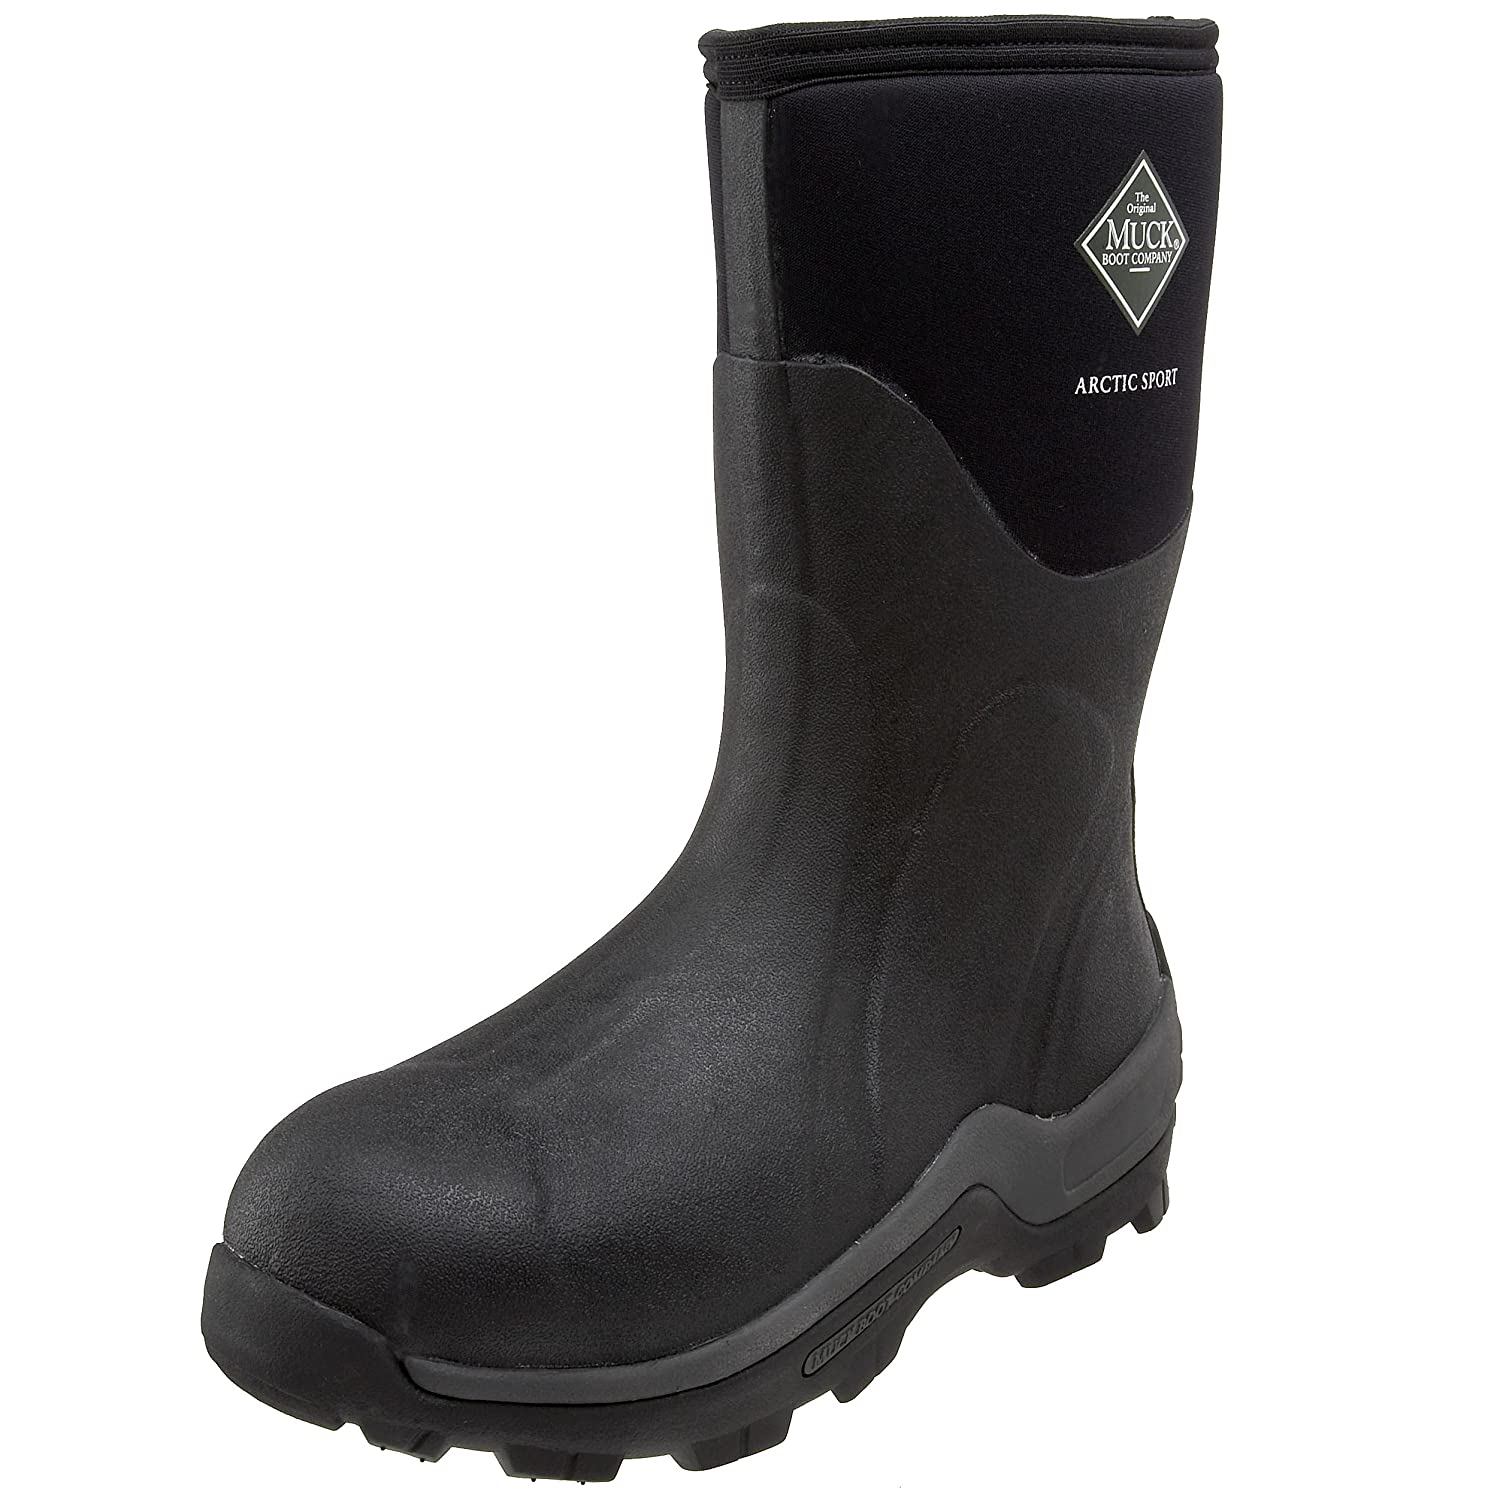 The Original MuckBoots Arctic Sport Mid Outdoor Boot B002VLYING 14 M US Mens/15 M US Womens|Black